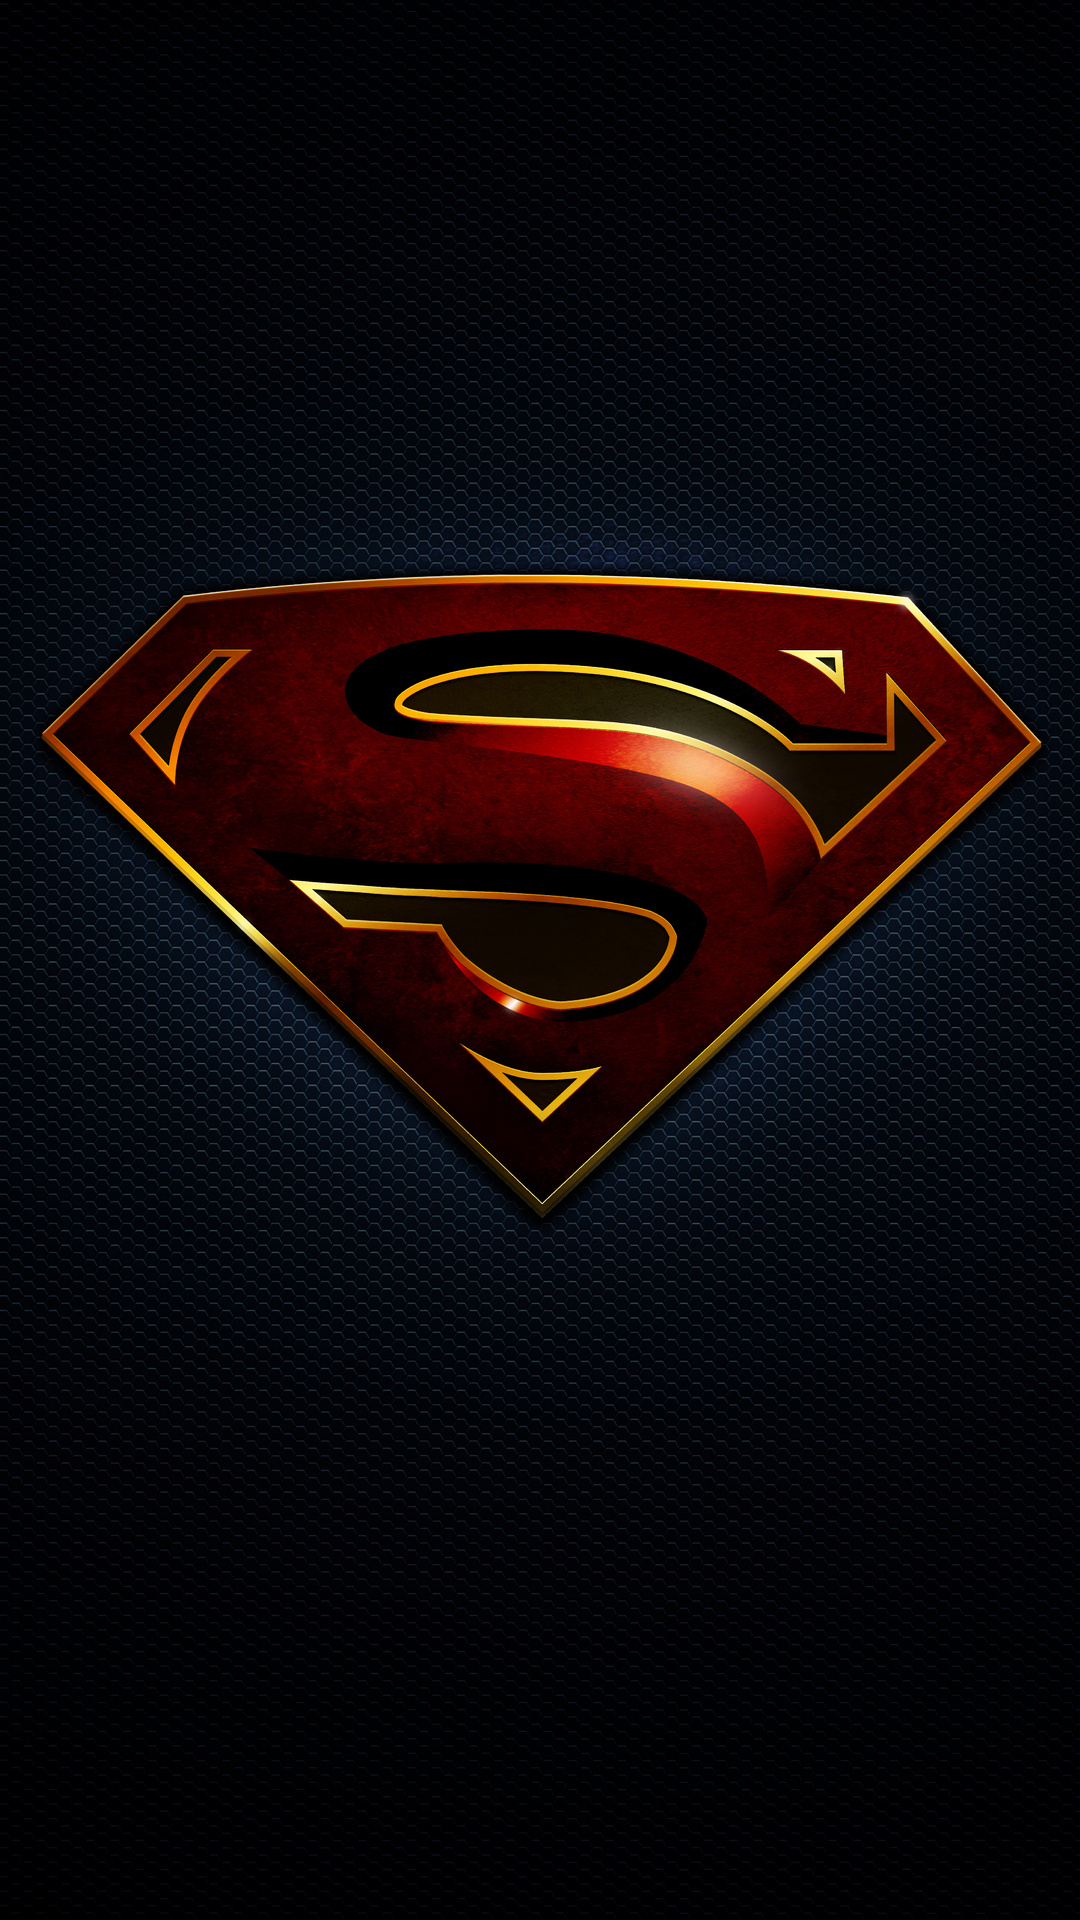 1080x1920 Superman Logo 10k Iphone 7 6s 6 Plus Pixel Xl